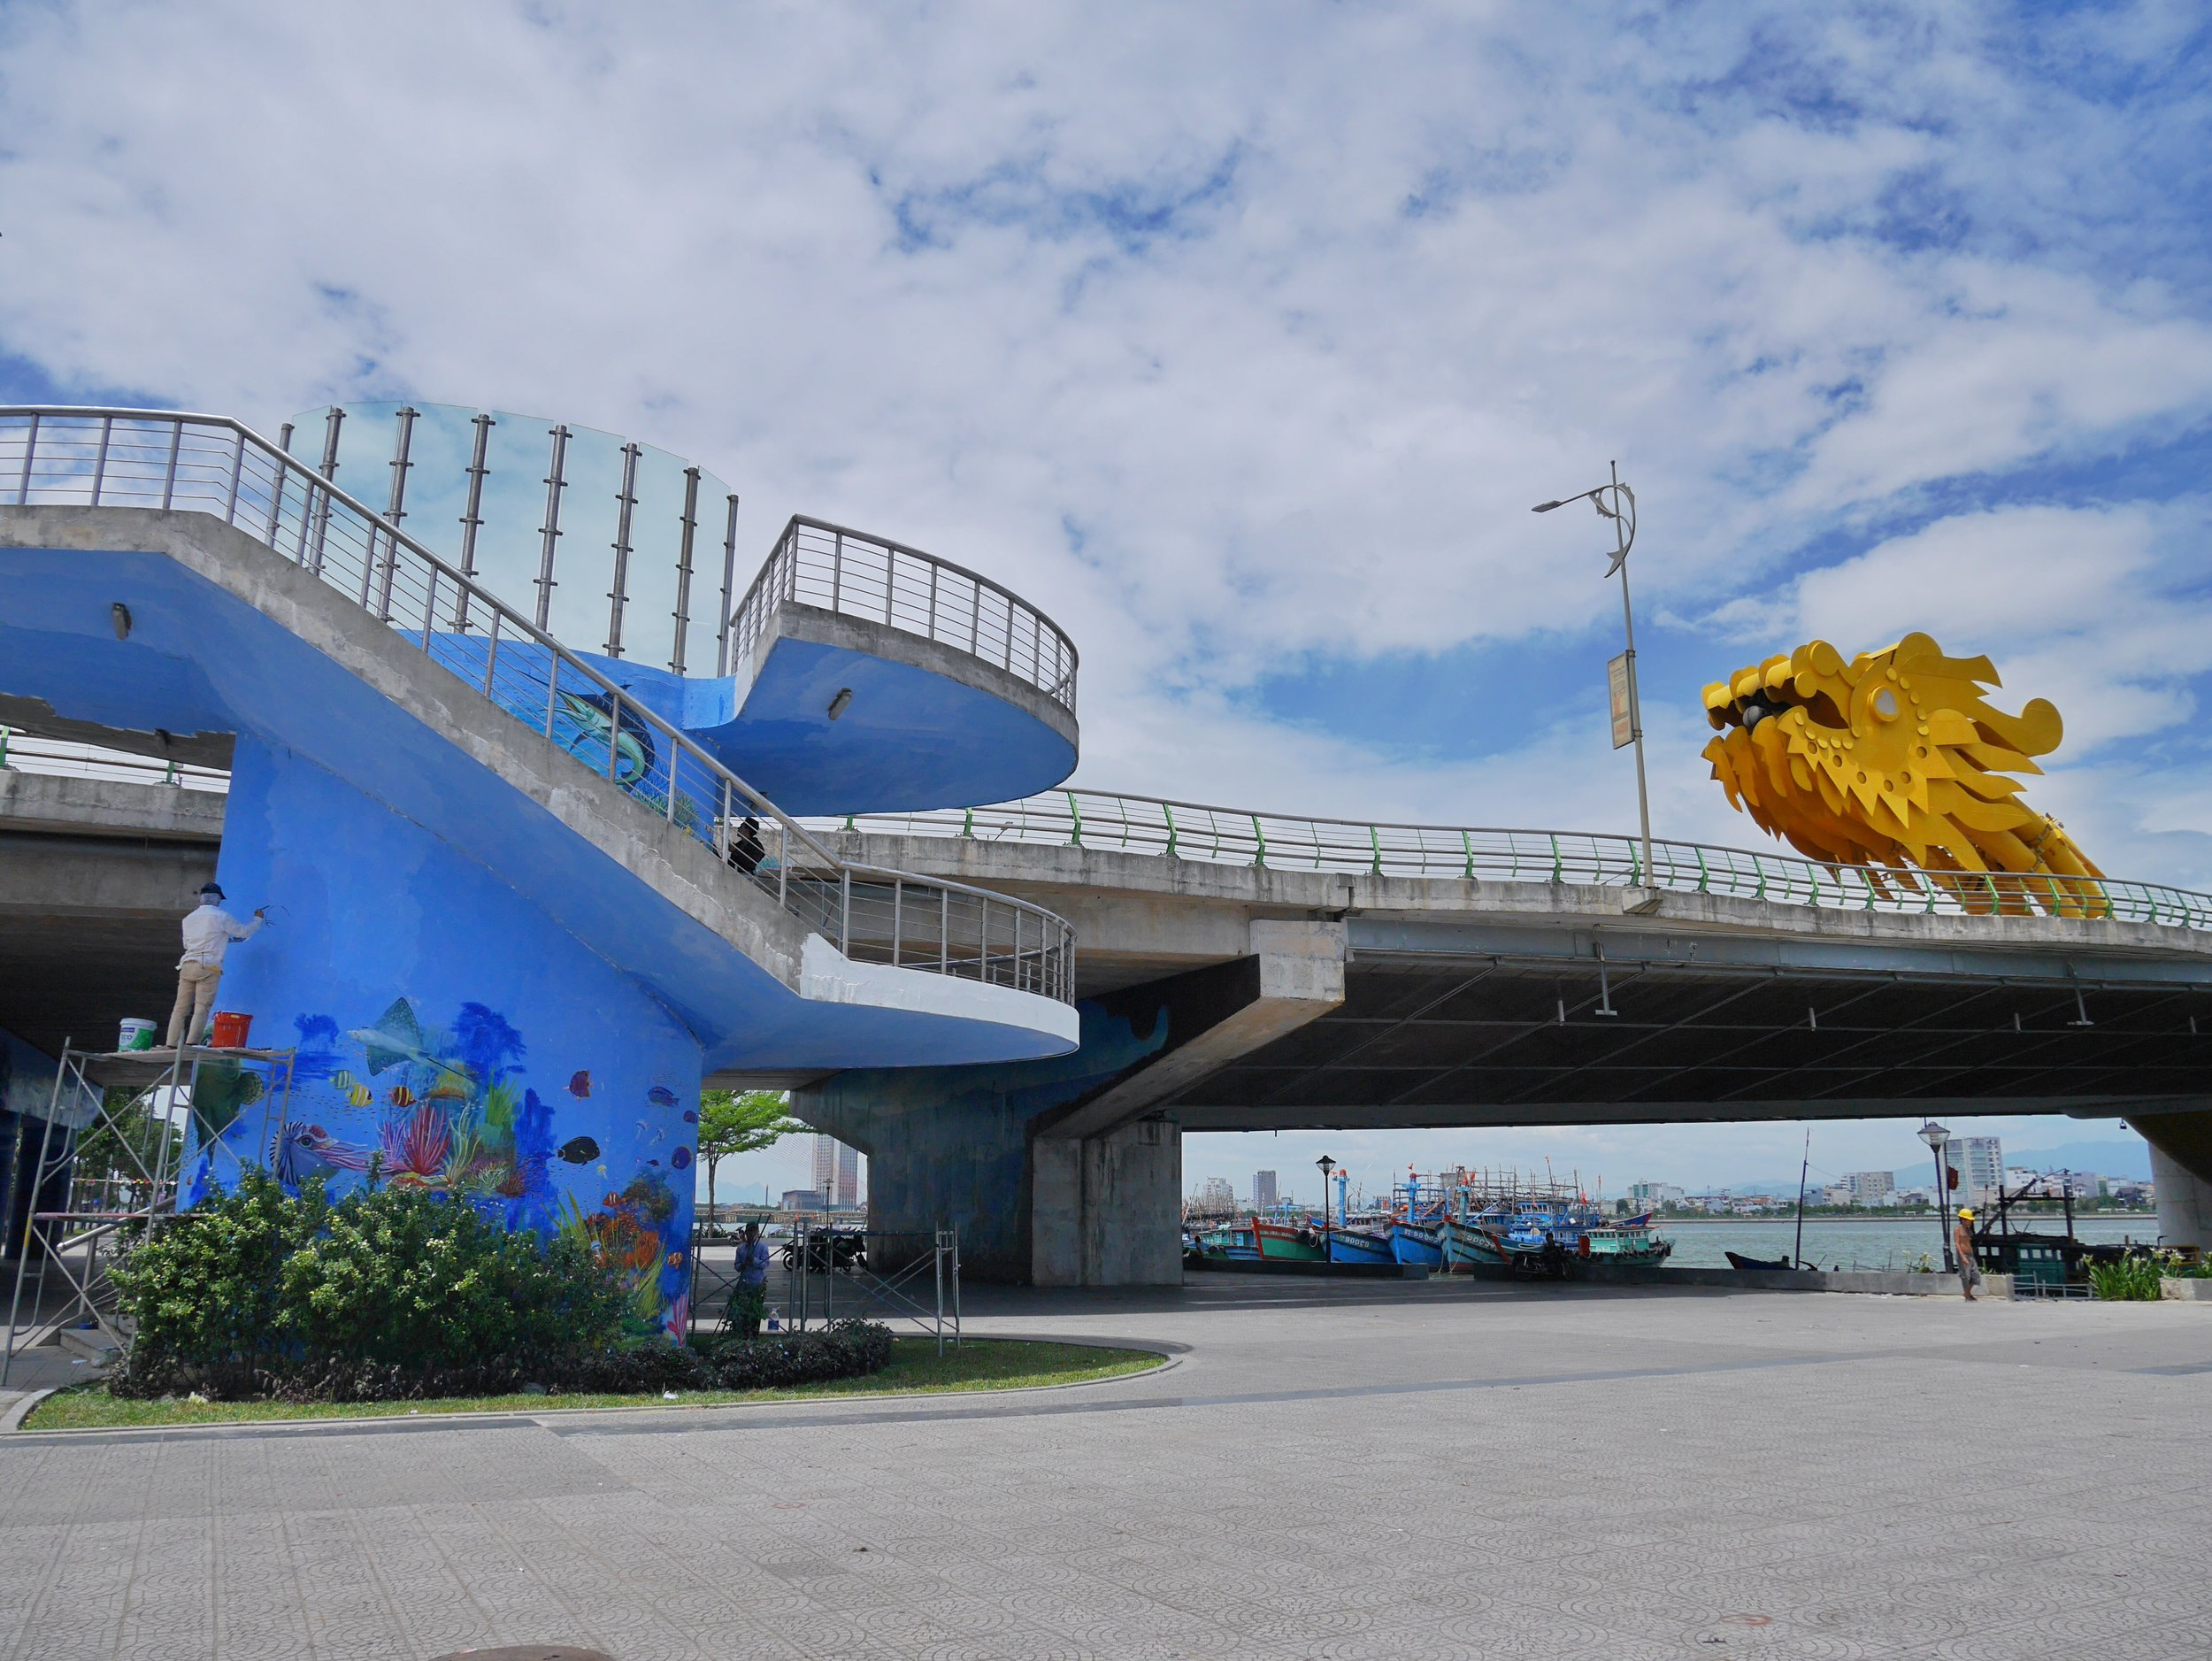 local artists painting undersea designs on the bridge over the Han River, Da Nang, Vietnam